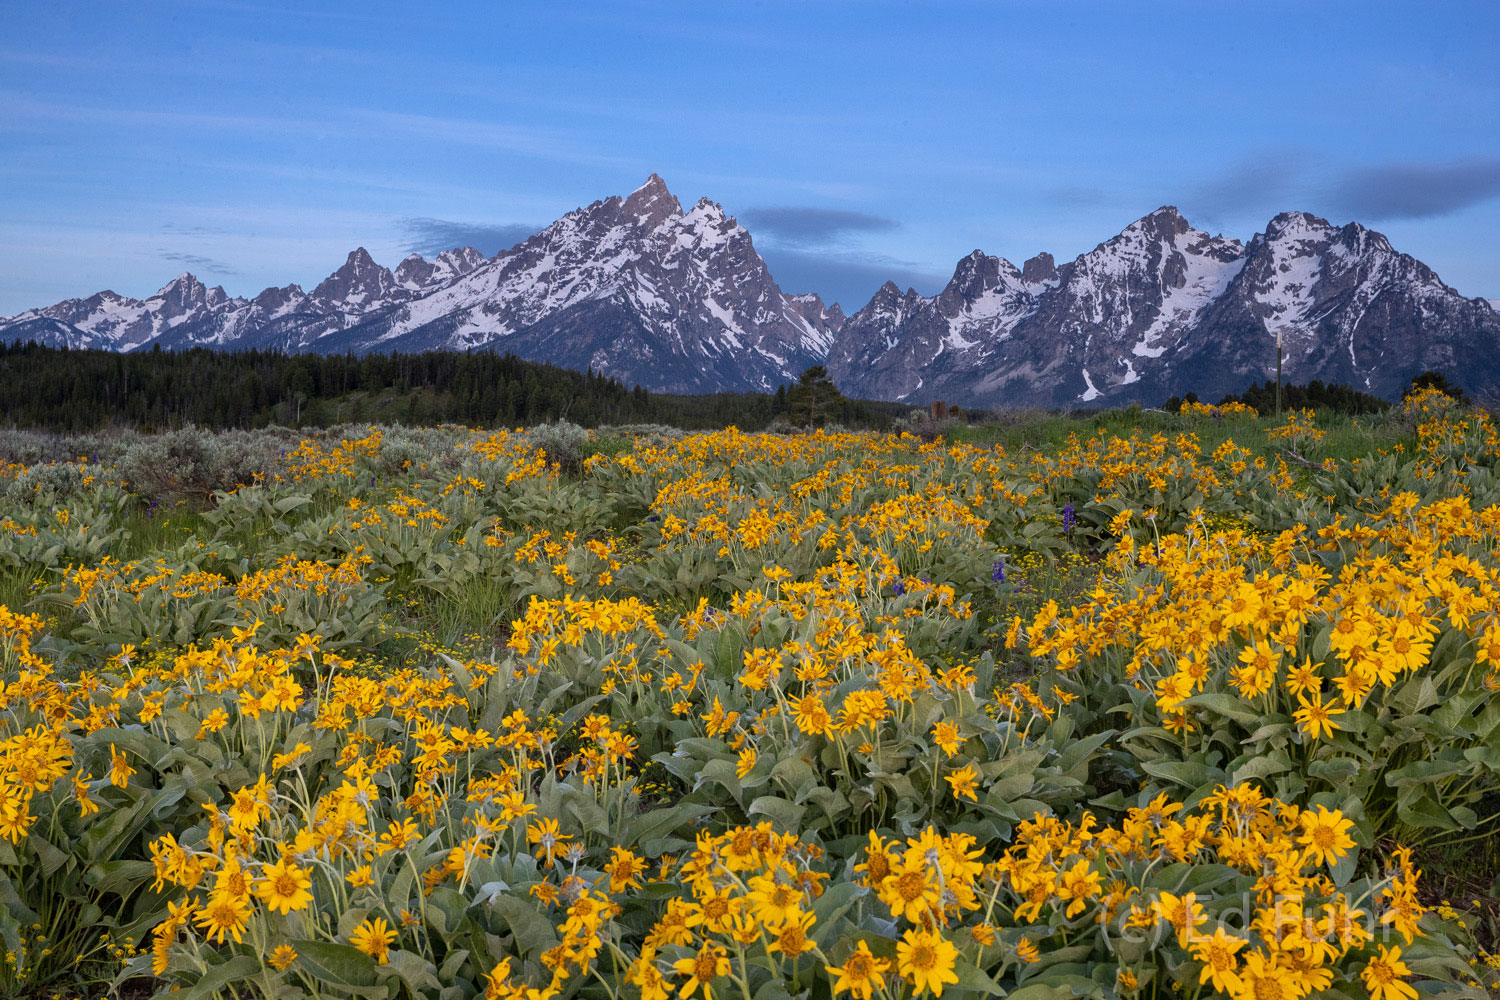 In early summer the meadows below the Tetons break out in sweeping swaths of brilliant wildflowers.